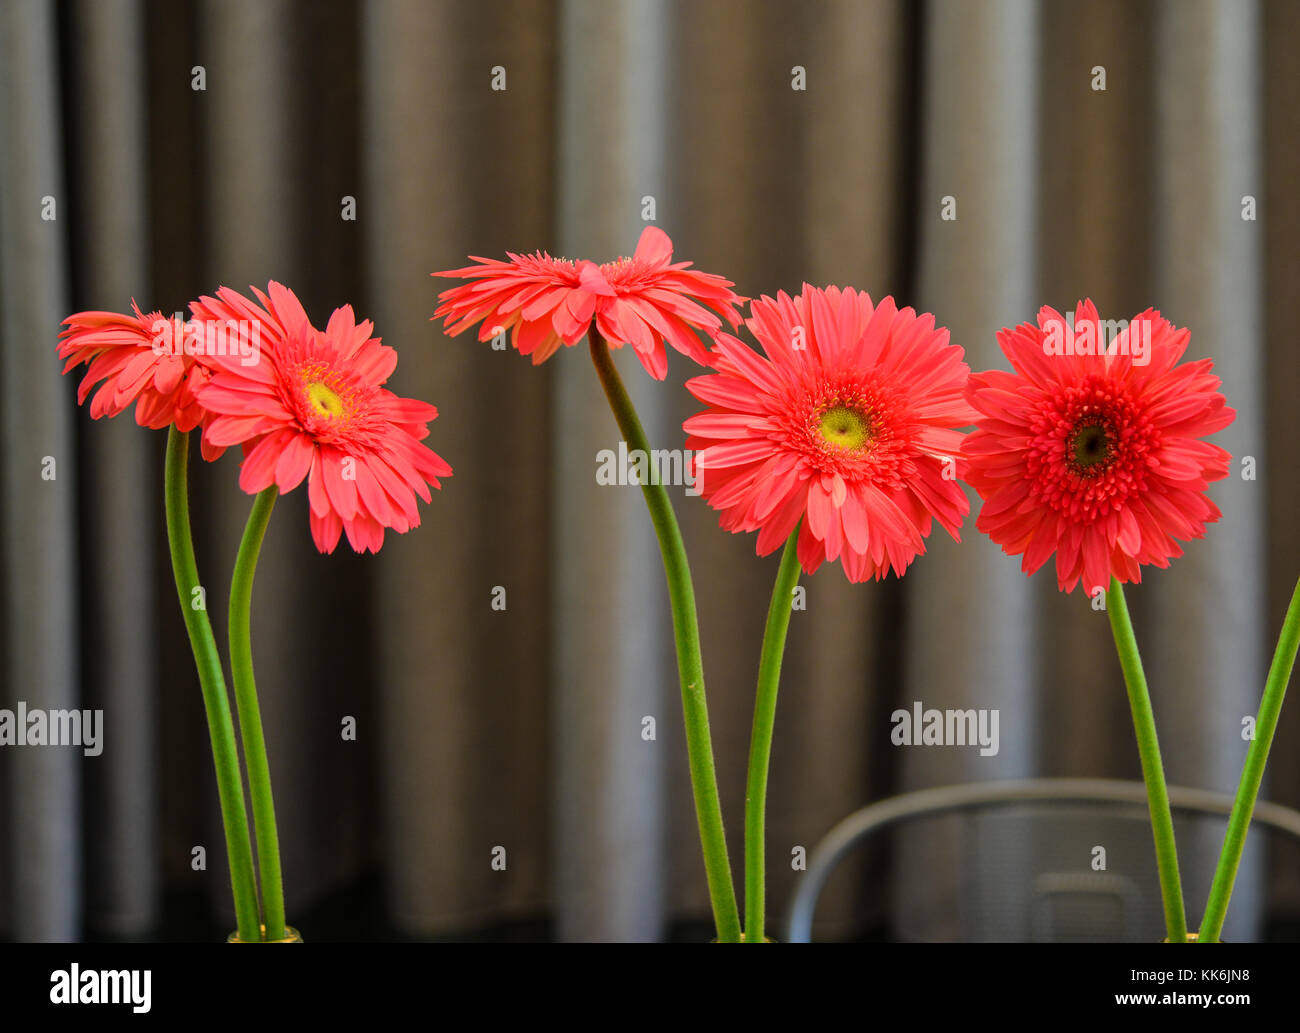 Gerbera flowers for decorations with curtain background. - Stock Image